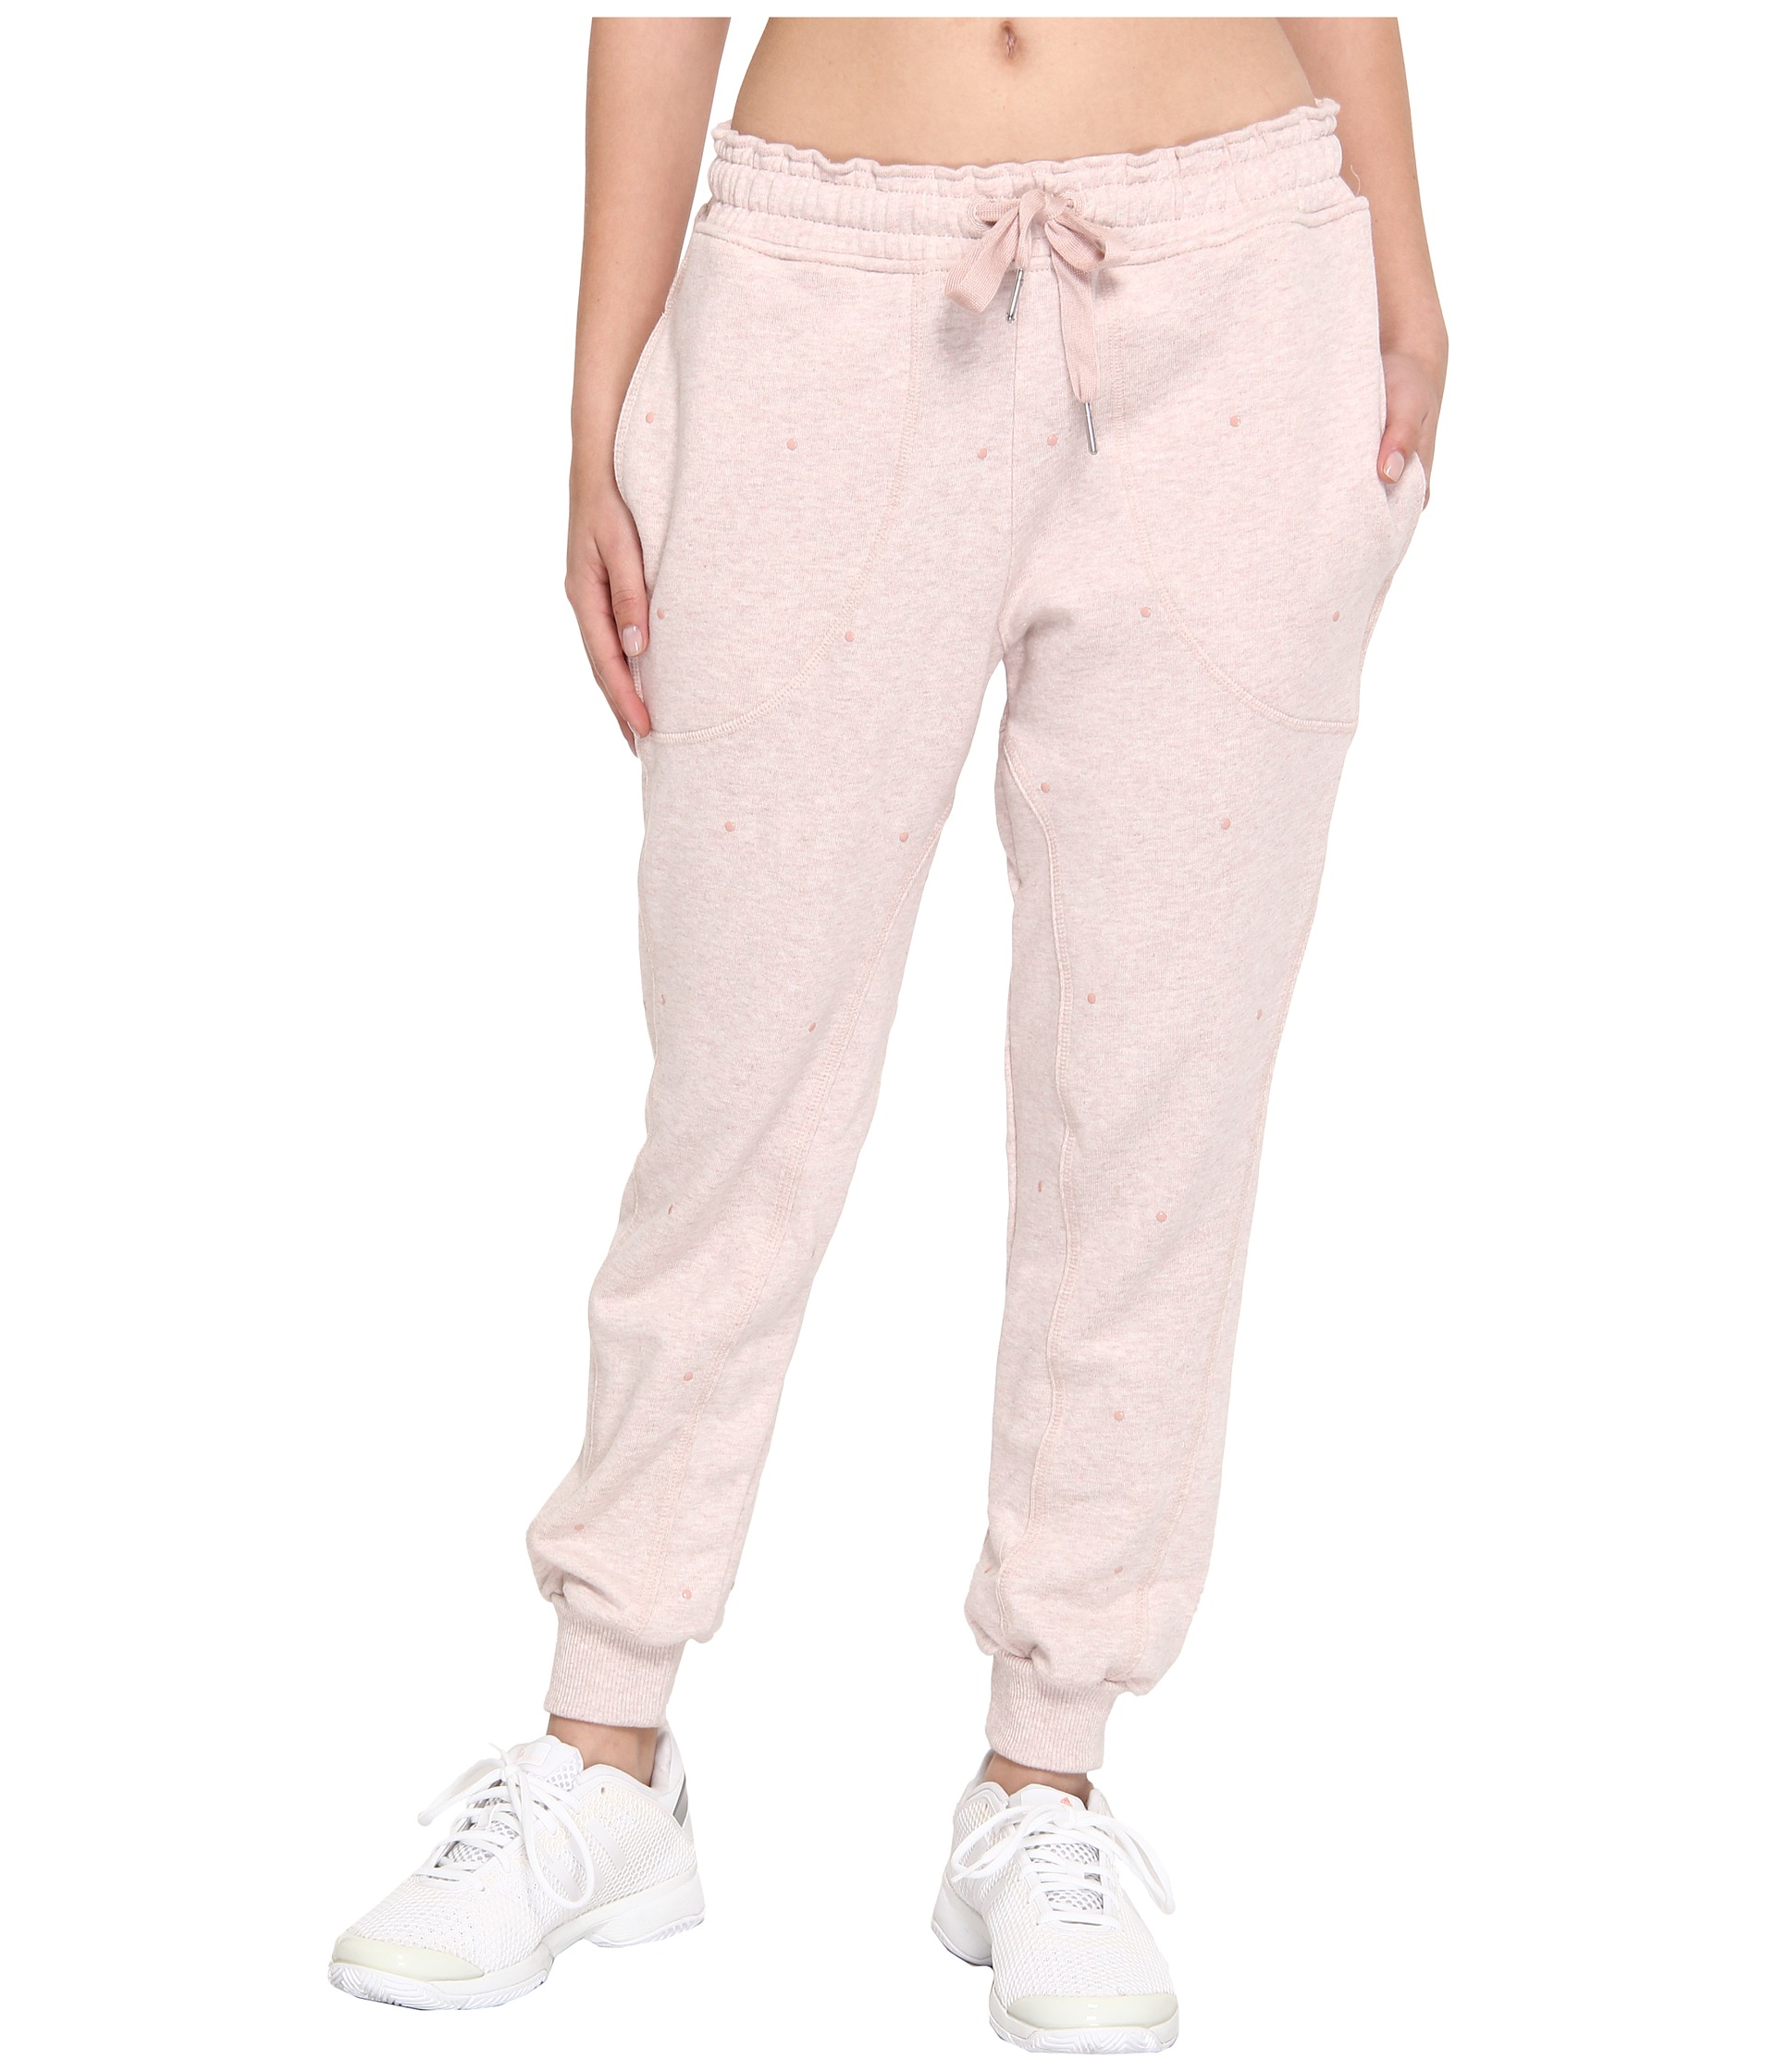 Free shipping BOTH ways on sweat pants with pockets for women, from our vast selection of styles. Fast delivery, and 24/7/ real-person service with a smile. Click or call